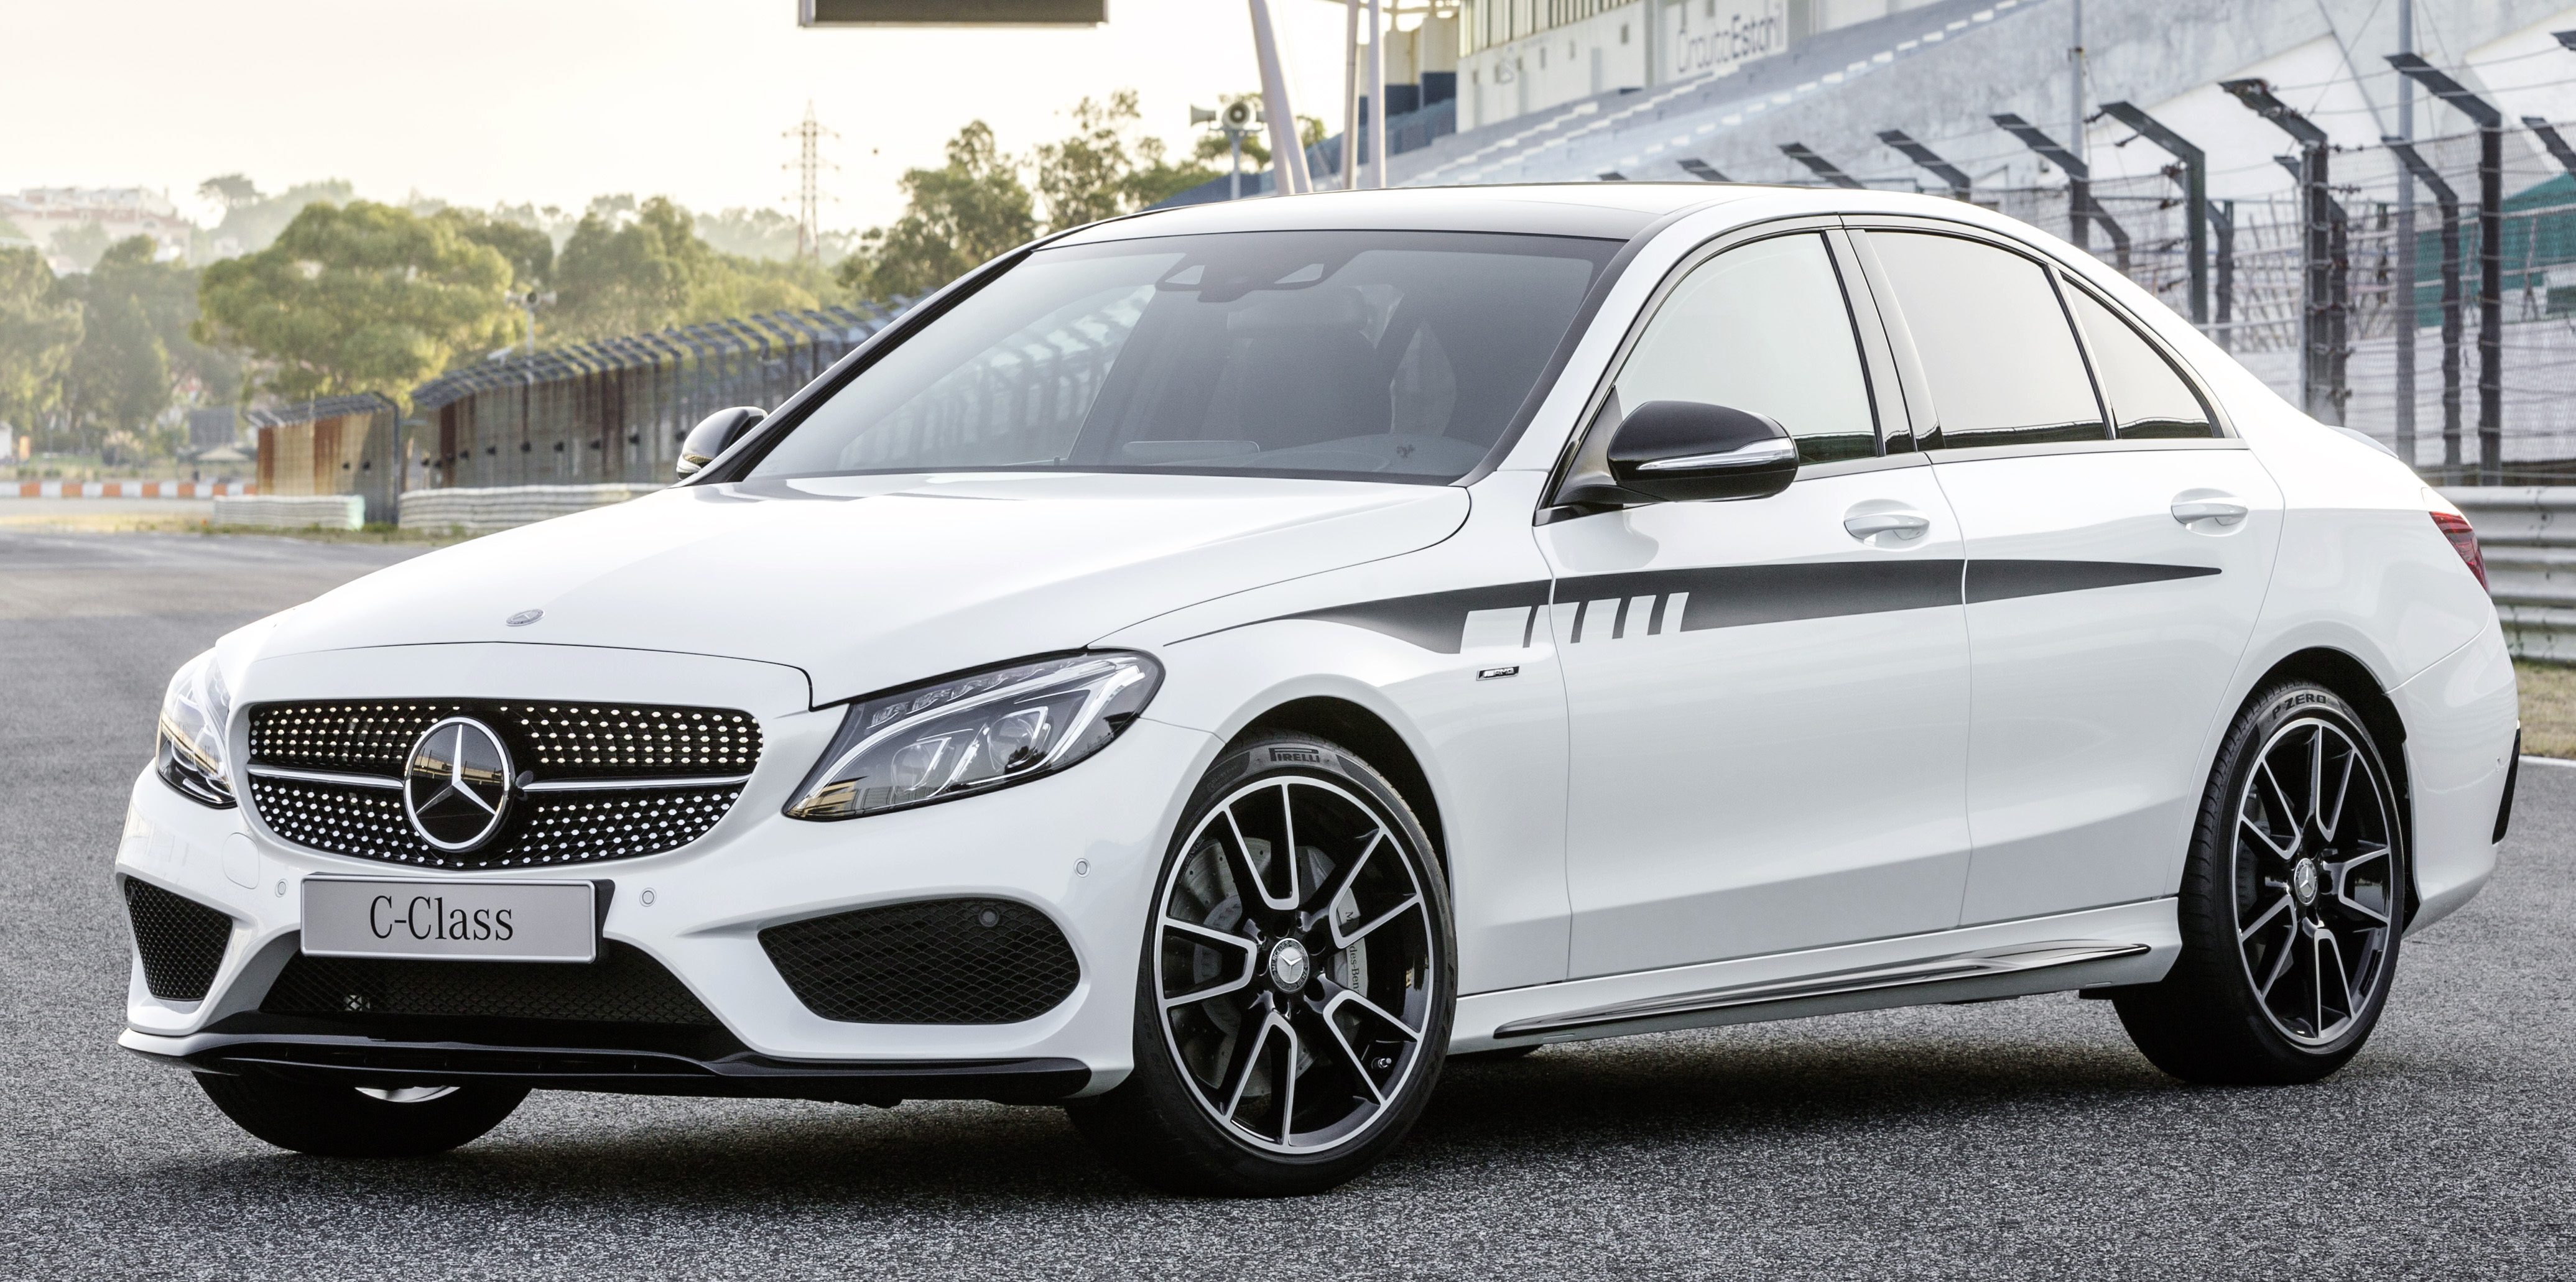 New amg accessories now available for w205 c class for Mercedes benz upgrades